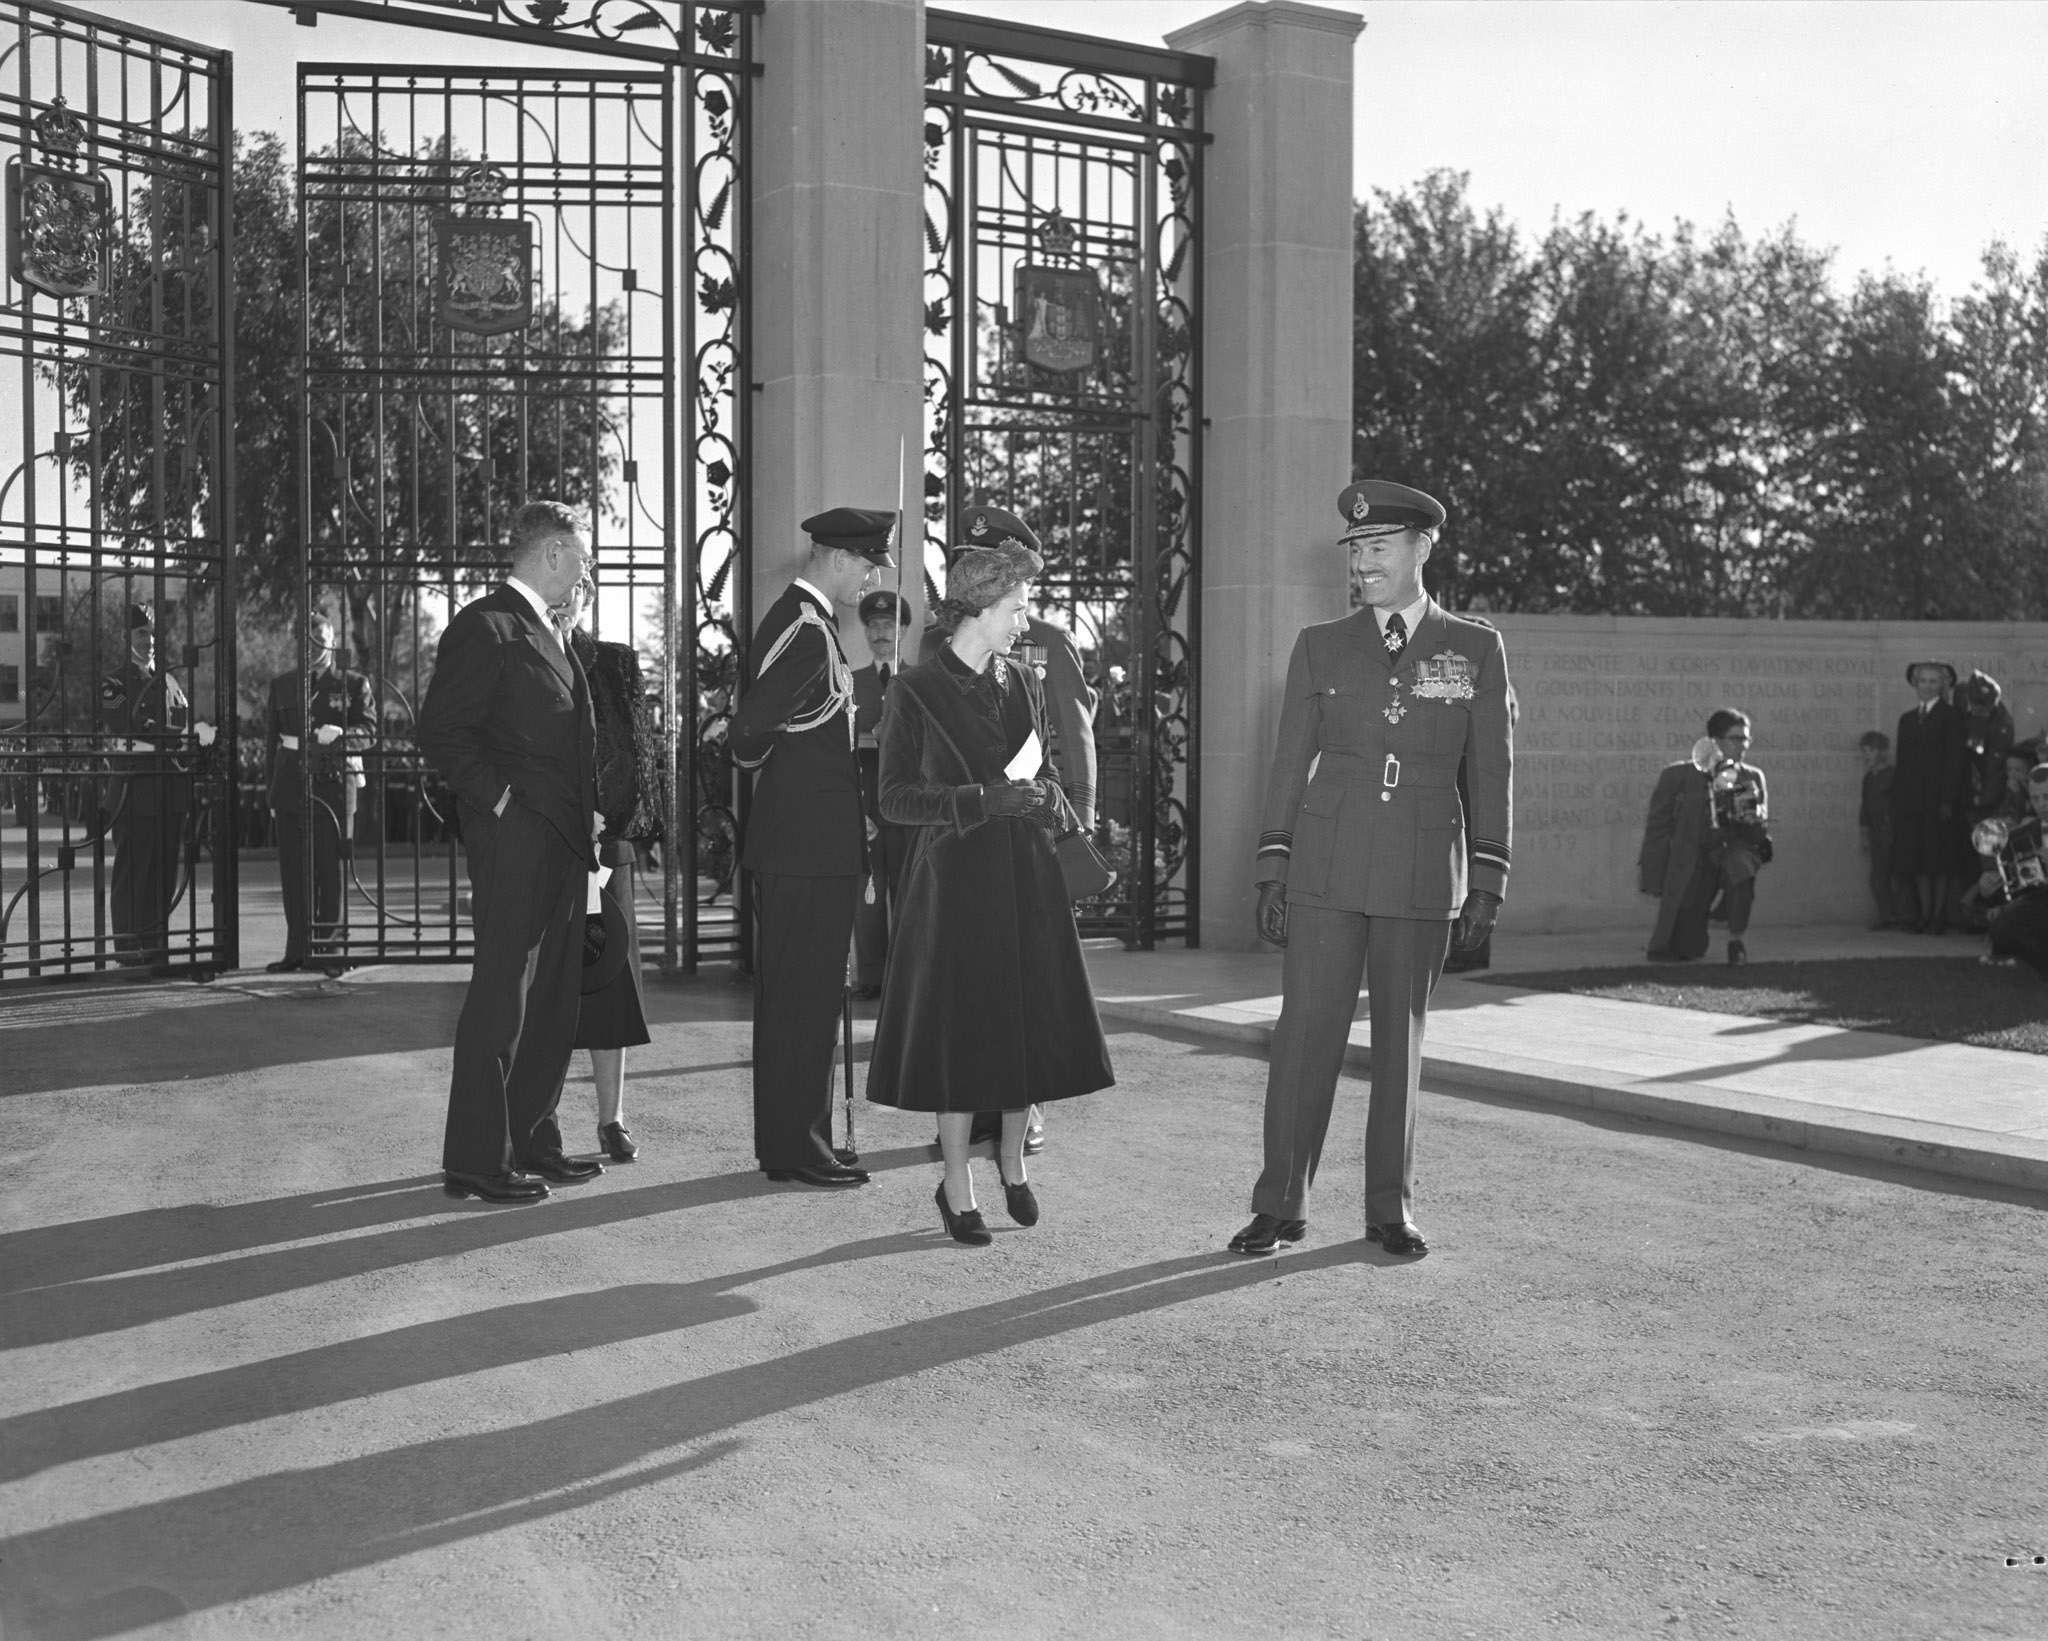 Air Vice Marshal Charles Roy Slemon, the air officer commanding of Training Command, speaks with Princess Elizabeth on the Royal Couple's arrival at Trenton. The Duke of Edinburgh is with parade commander, Group Captain G.P. Dunlop (partly obscured), while Defence Minister Brooke Claxton and his wife, Helen Claxton, look on. PHOTO: DND Archives, PL-52814